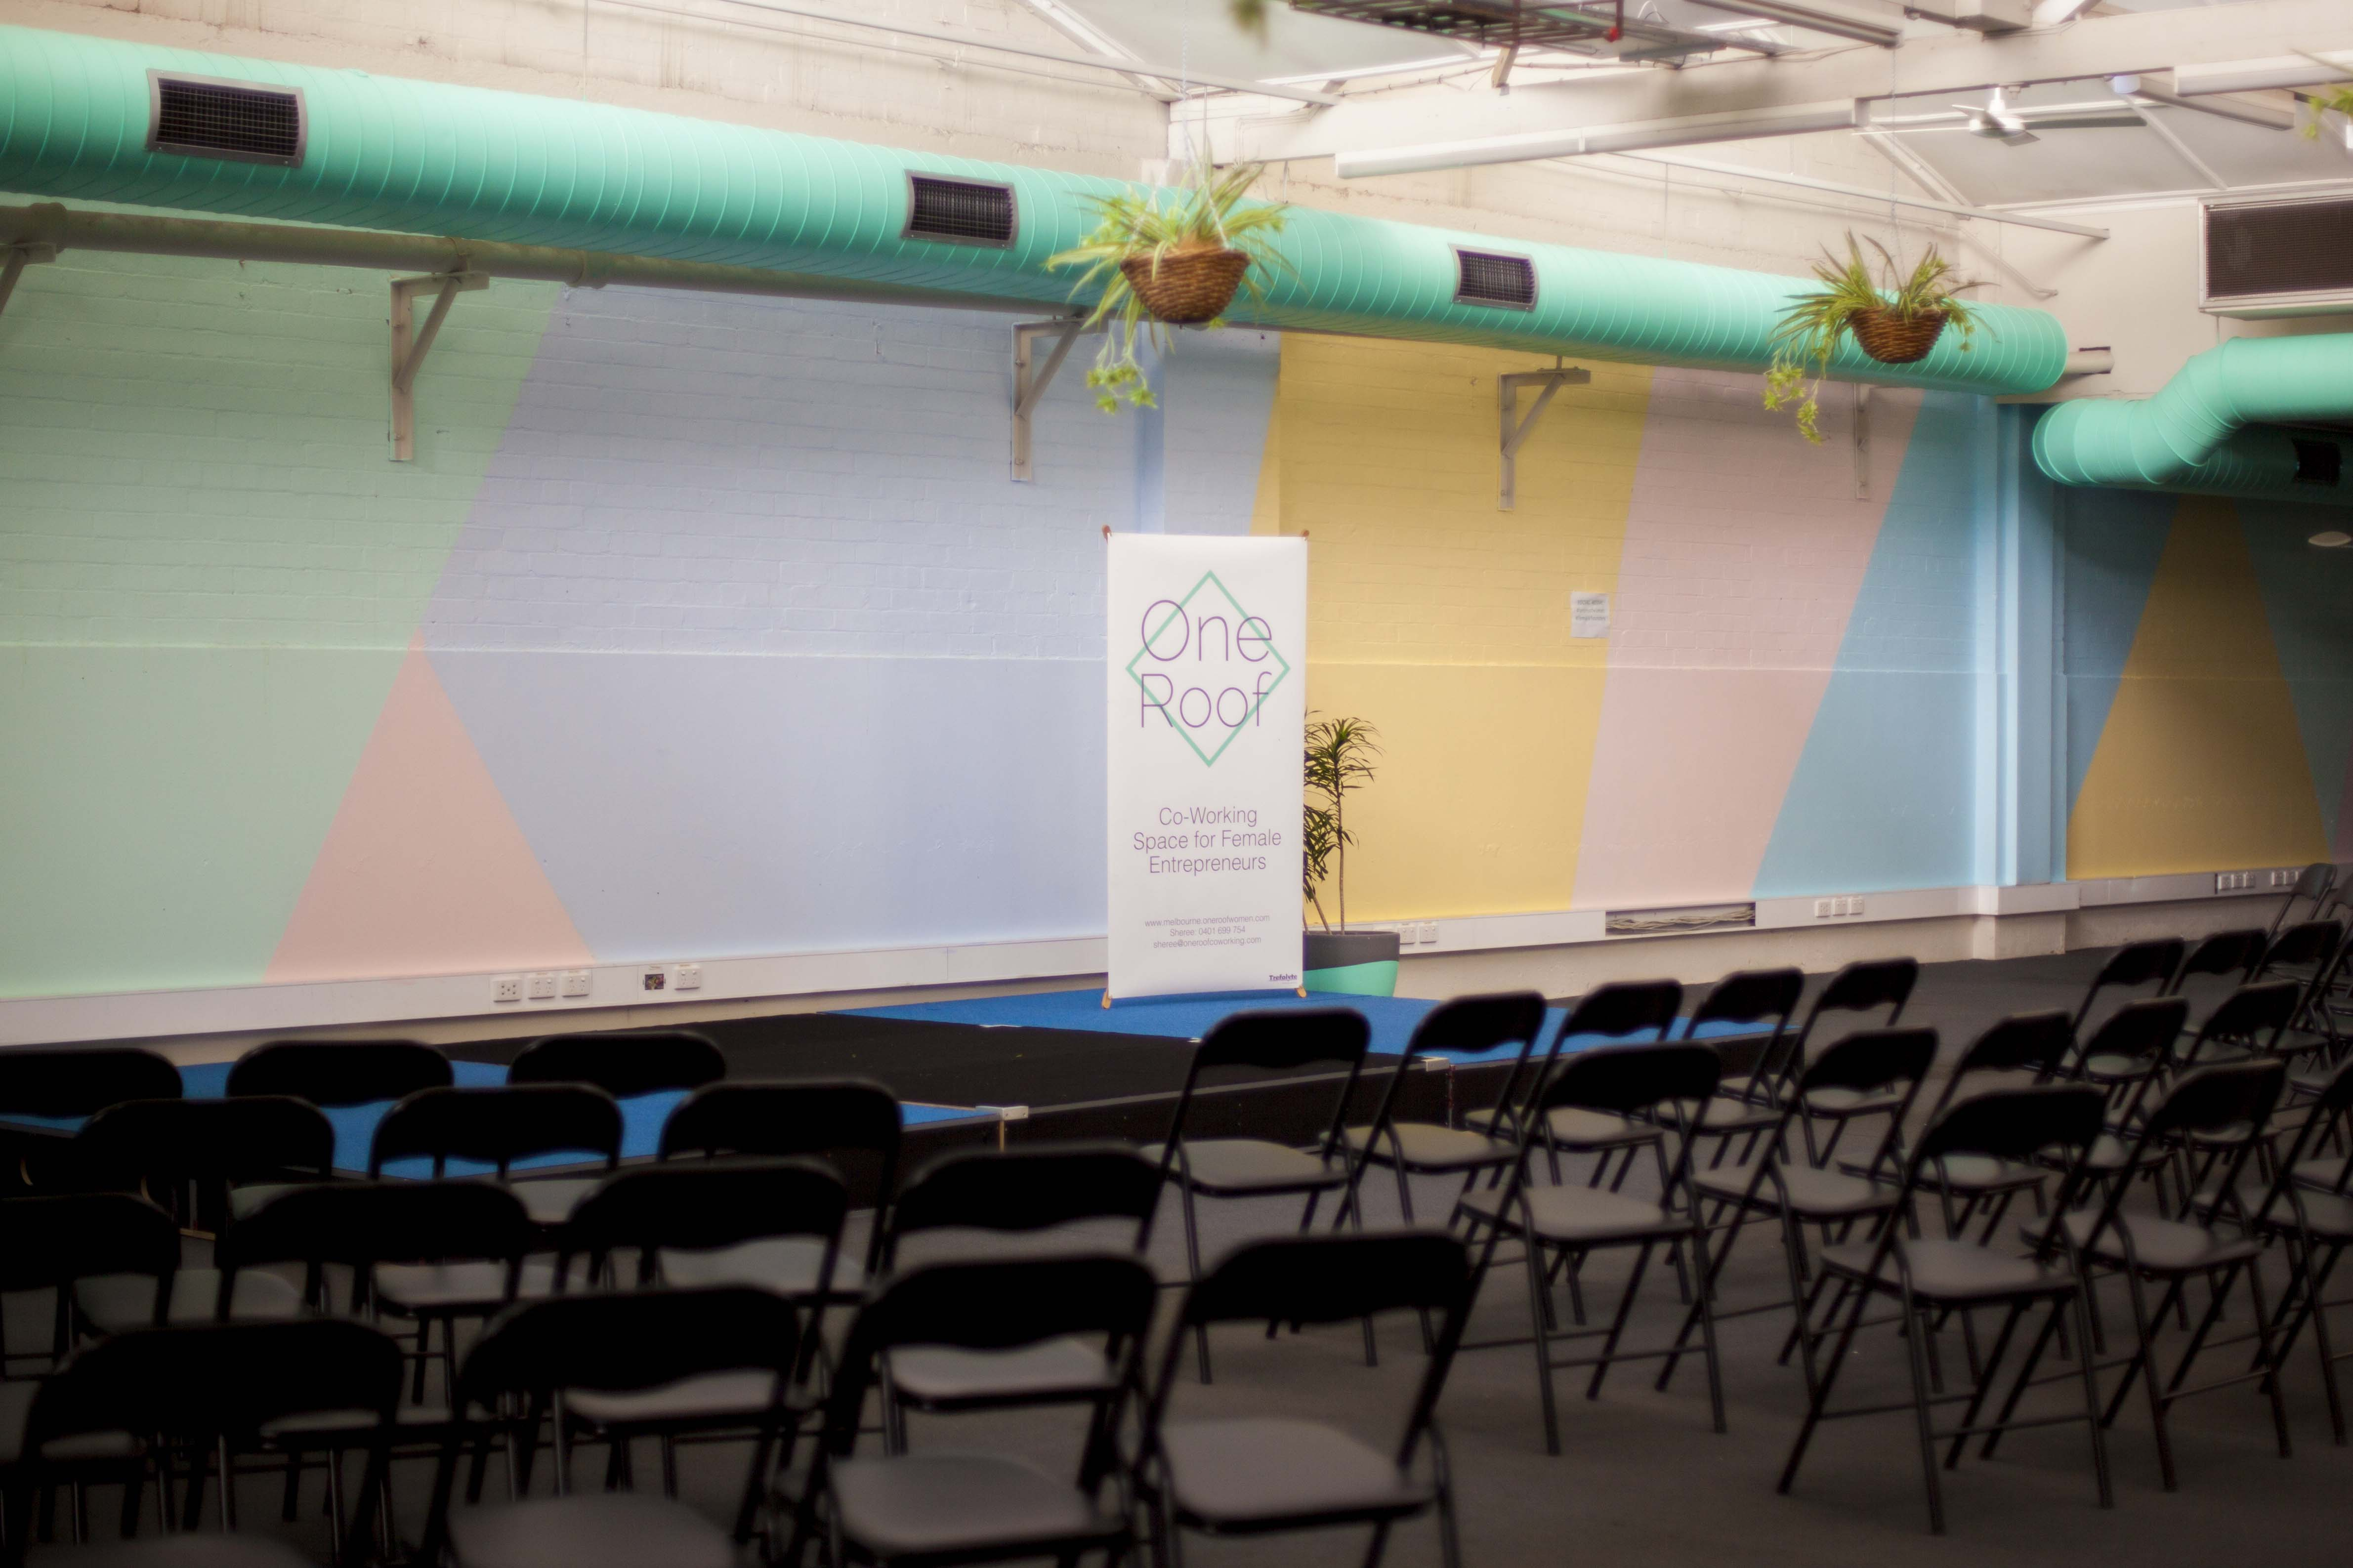 Habu - One Roof Women Coworking Event Space